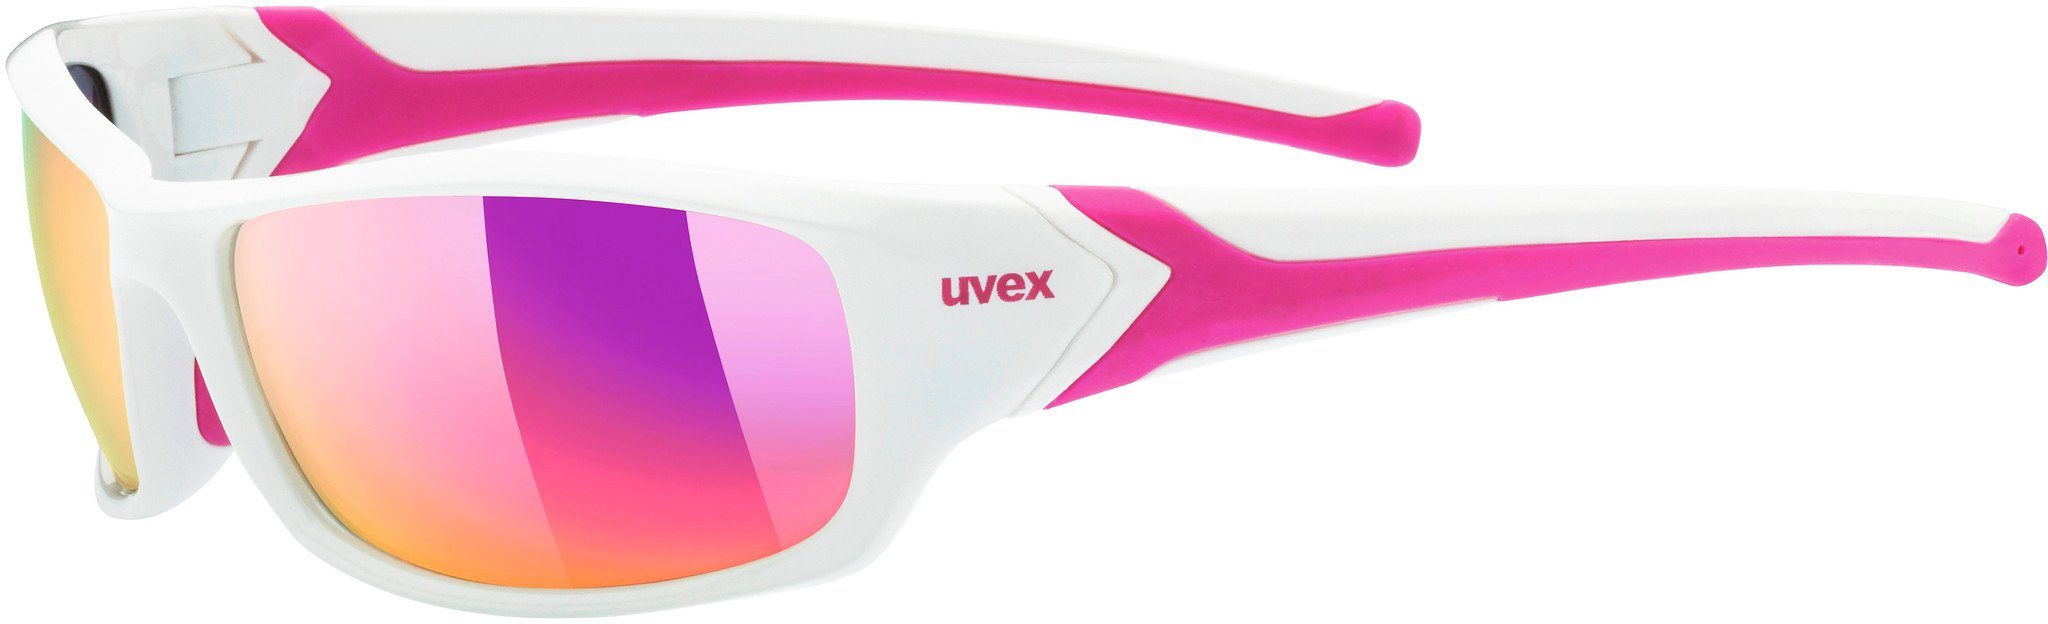 Uvex Sportbrille »sportstyle 211 Glasses«